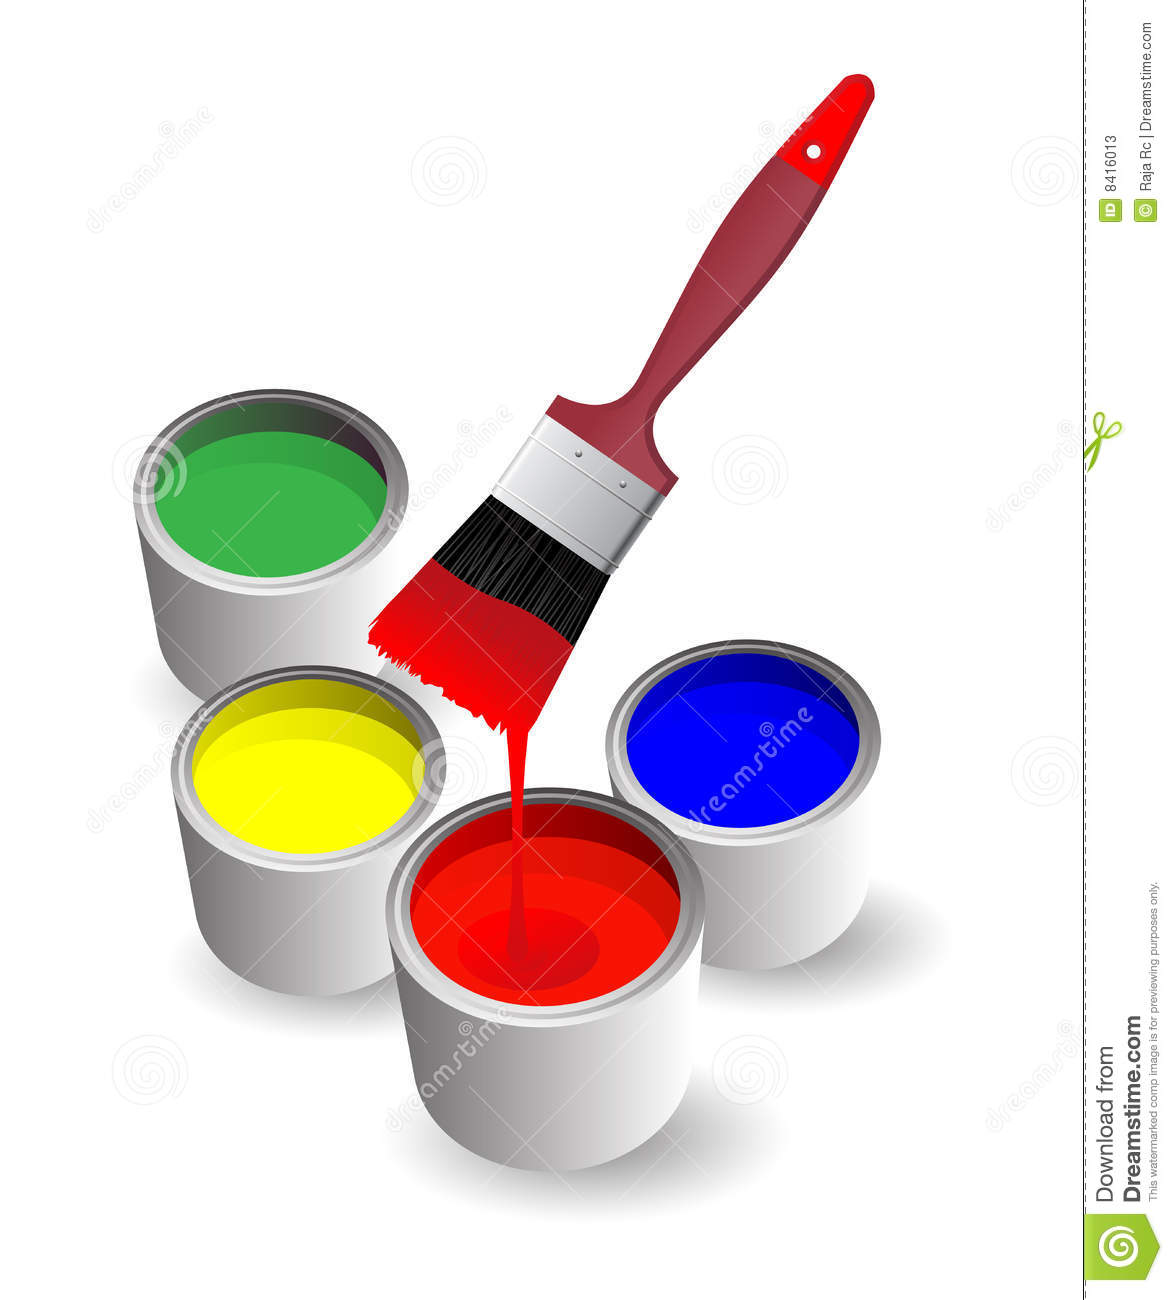 Https Www Dreamstime Com Stock Photos Paints Image8416013